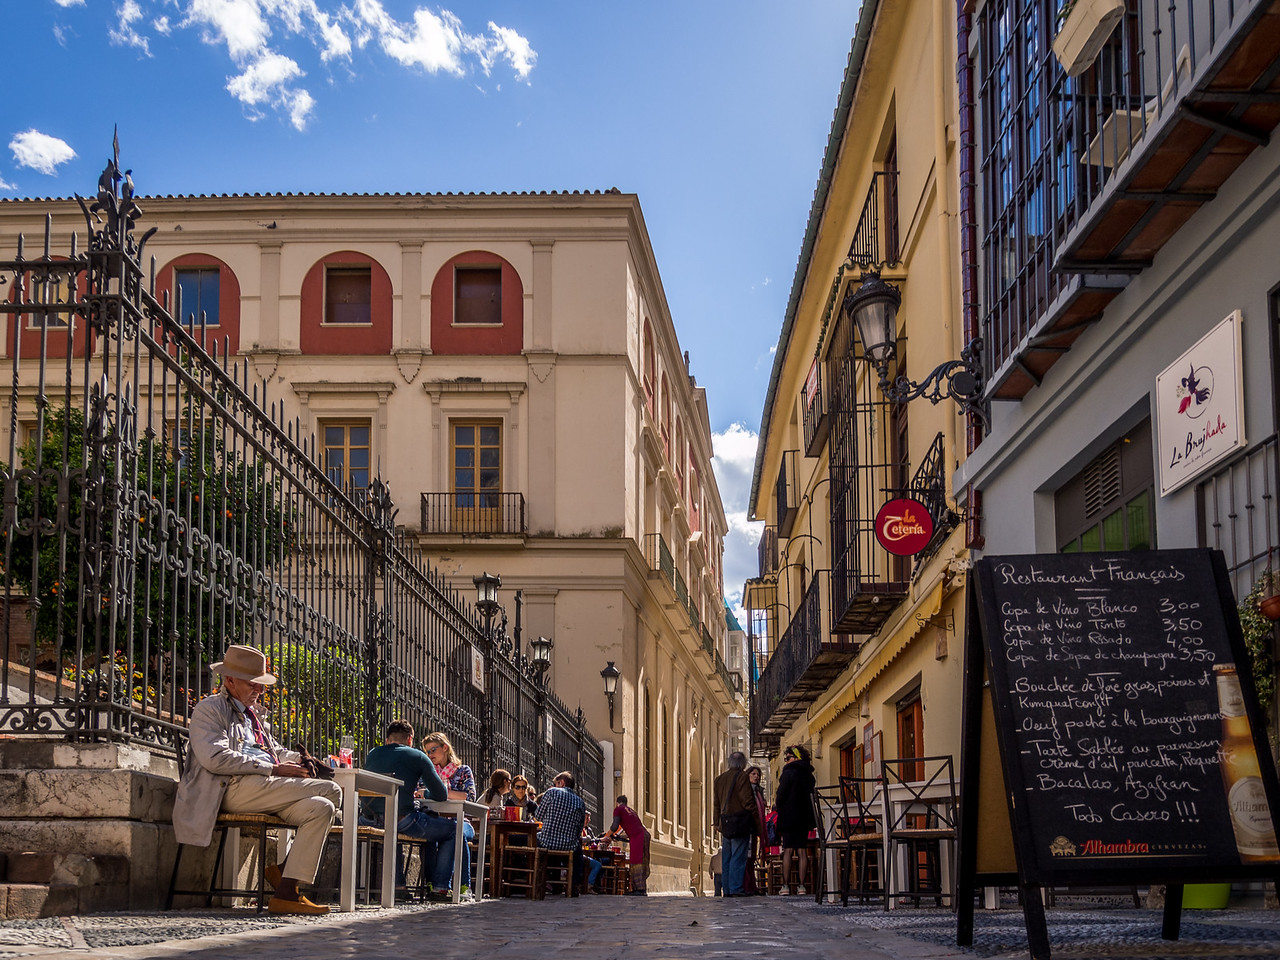 A Drink on the Sidewalk, Málaga